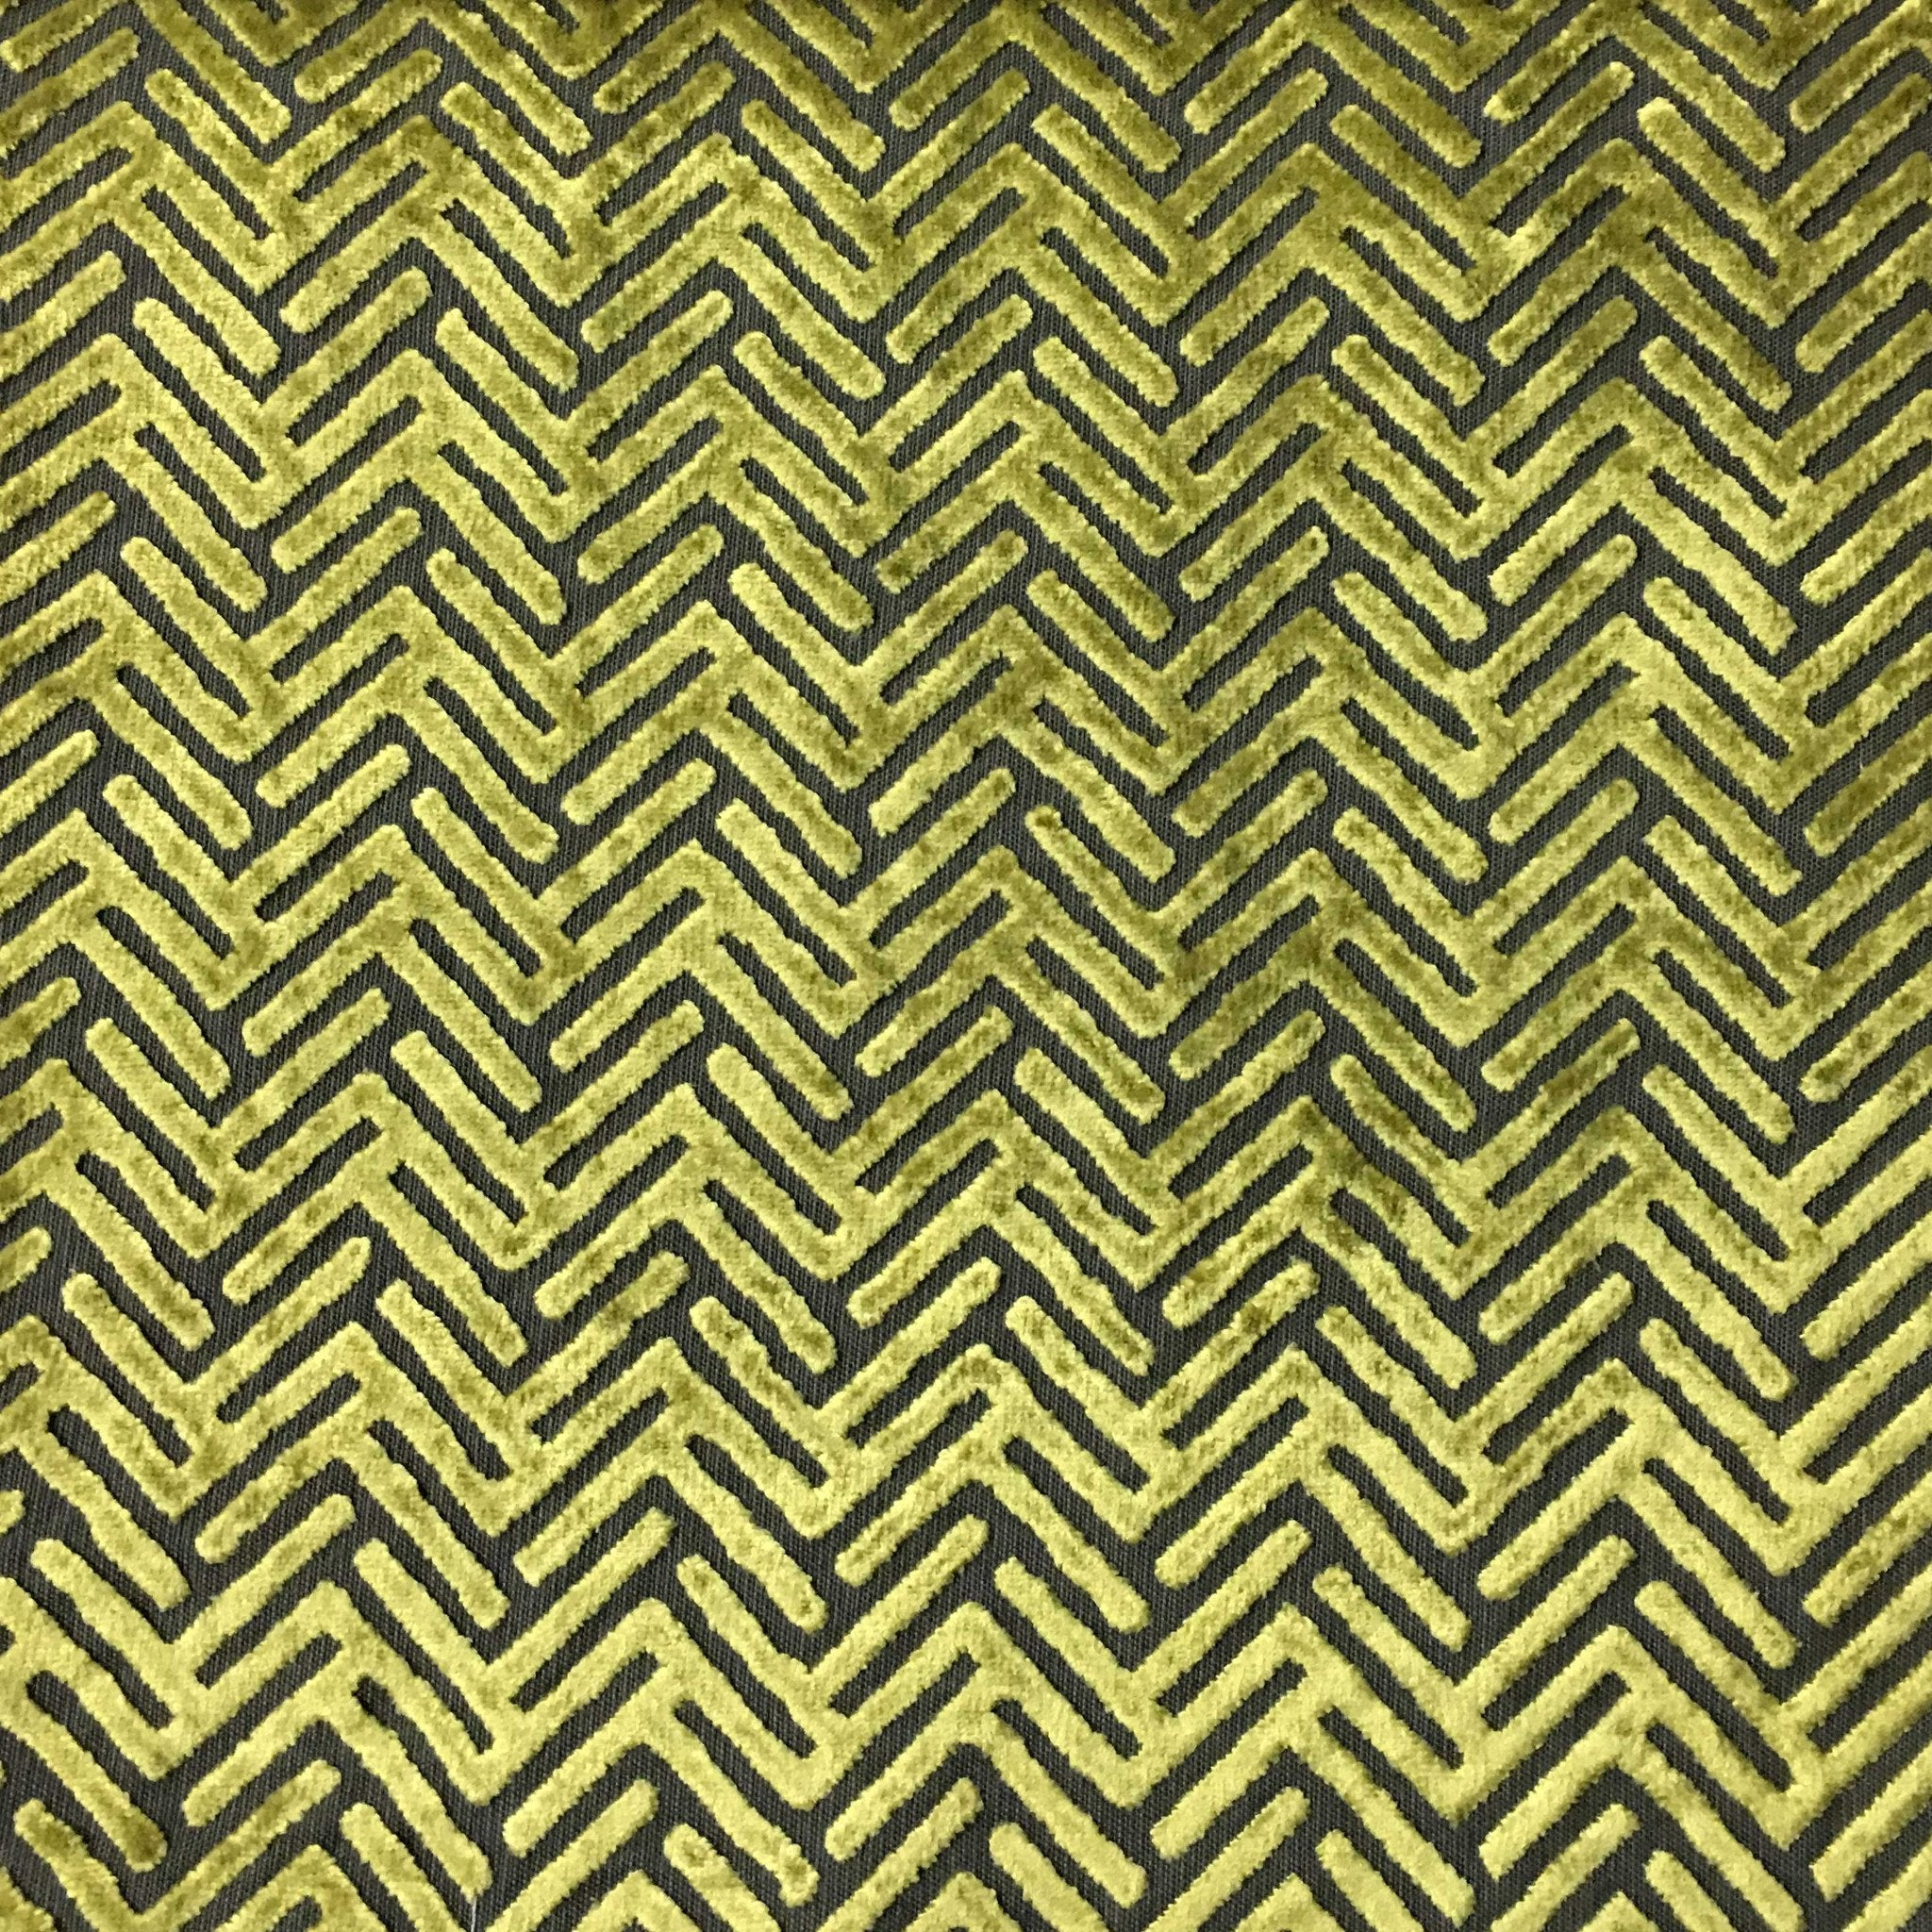 Apollo Geometric Burnout Velvet Upholstery Fabric by the